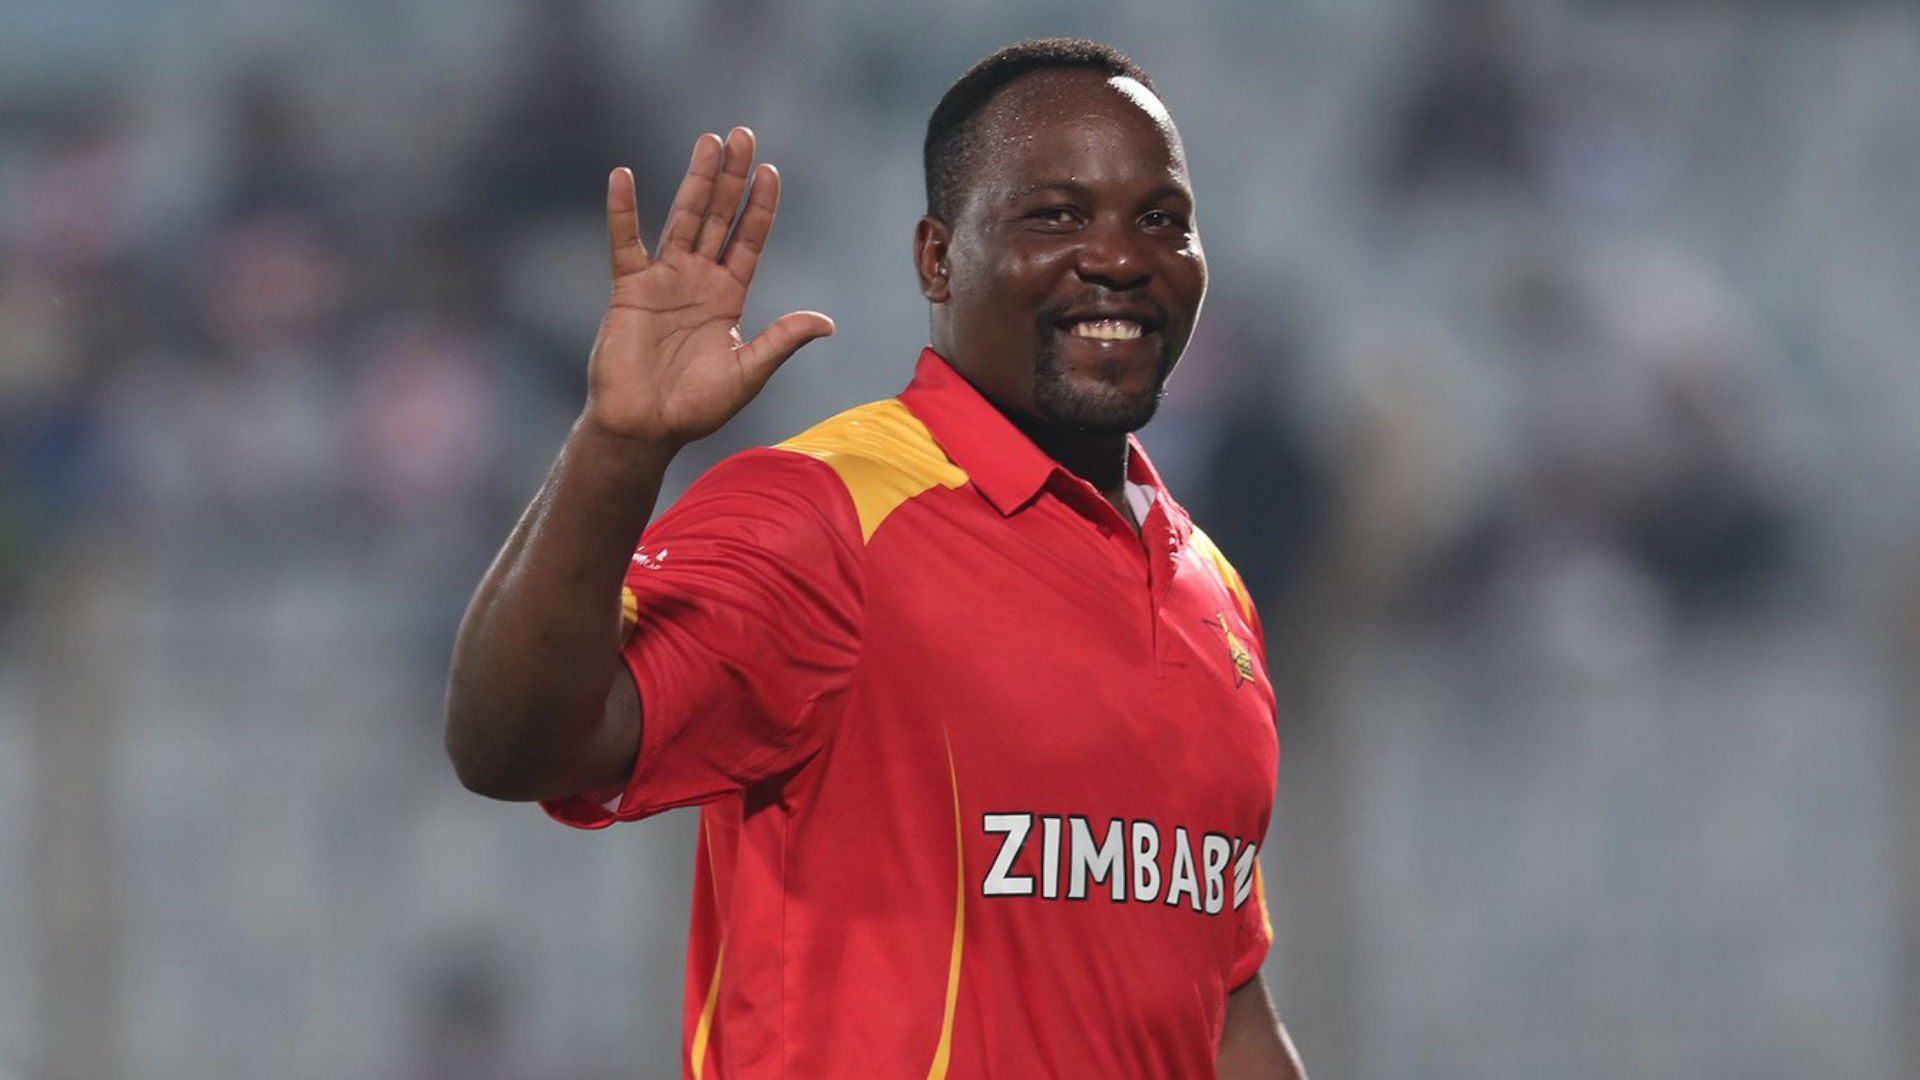 Masakadza signs off in style with match-winning innings for Zimbabwe